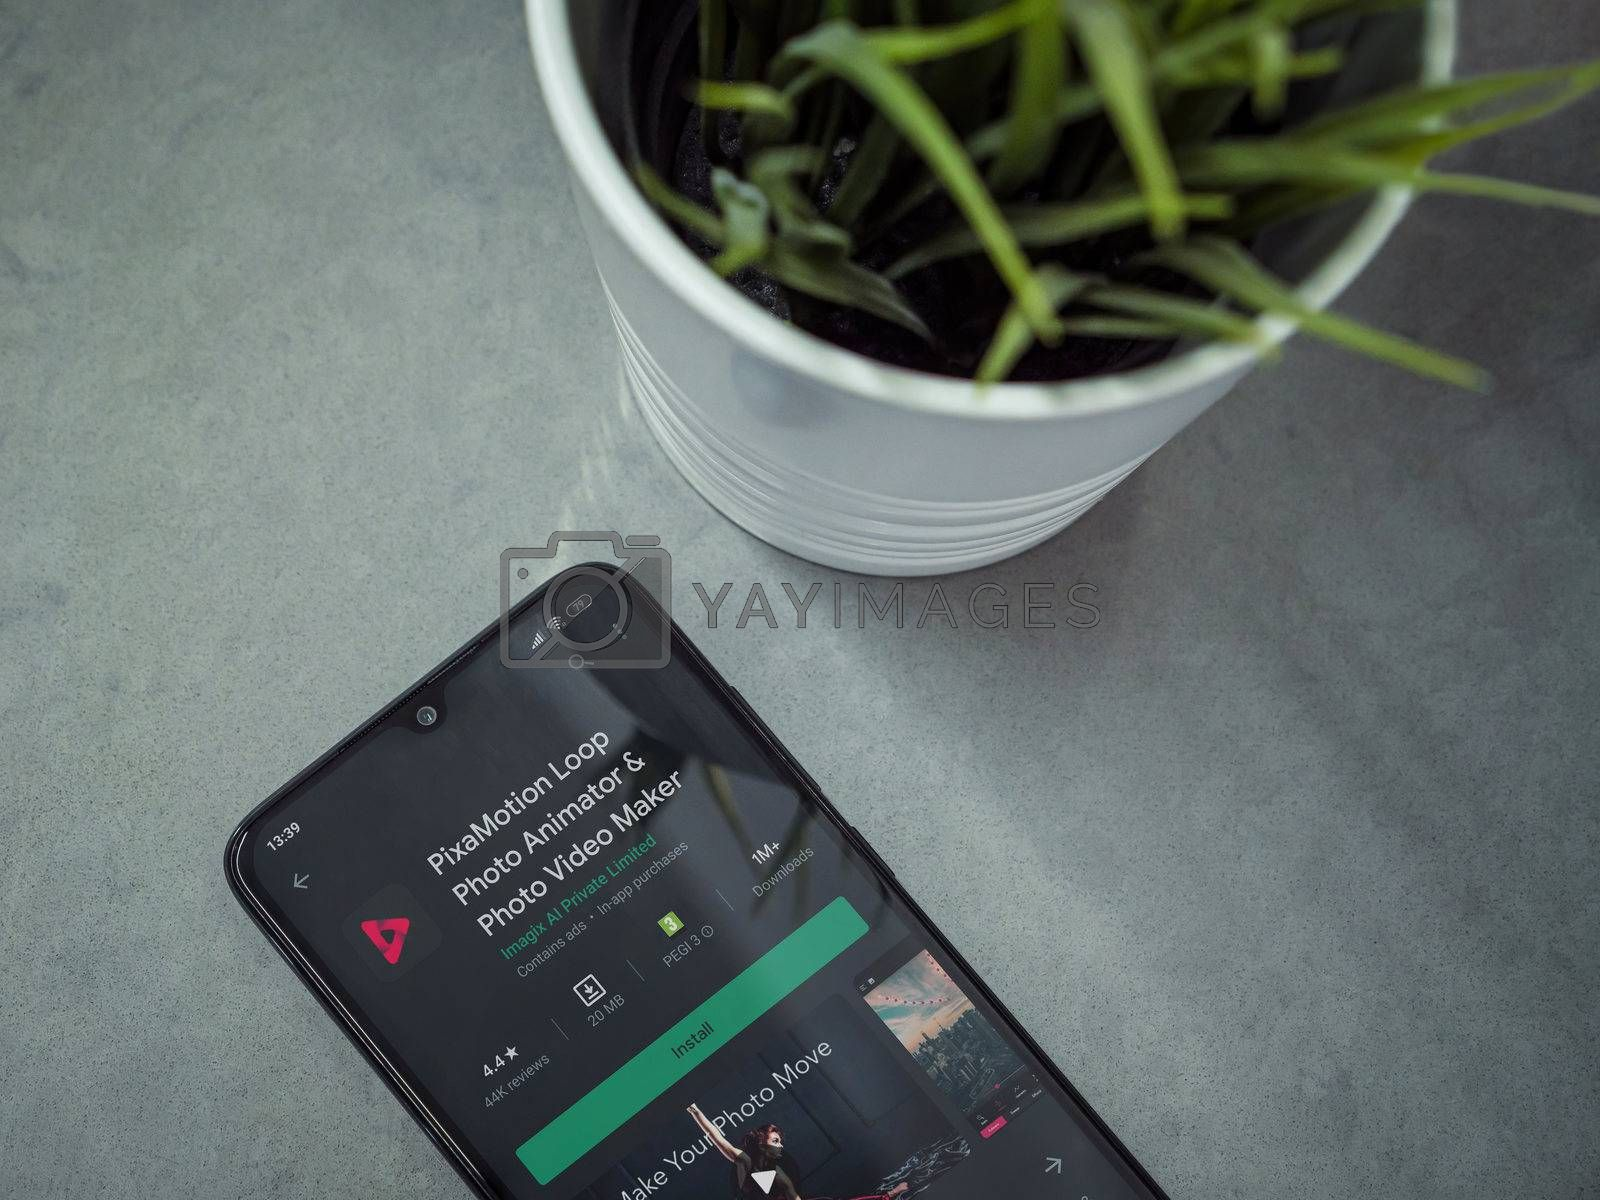 Lod, Israel - July 8, 2020: Modern minimalist office workspace with black mobile smartphone with PixaMotion app play store page on a marble background. Close up top view flat lay.